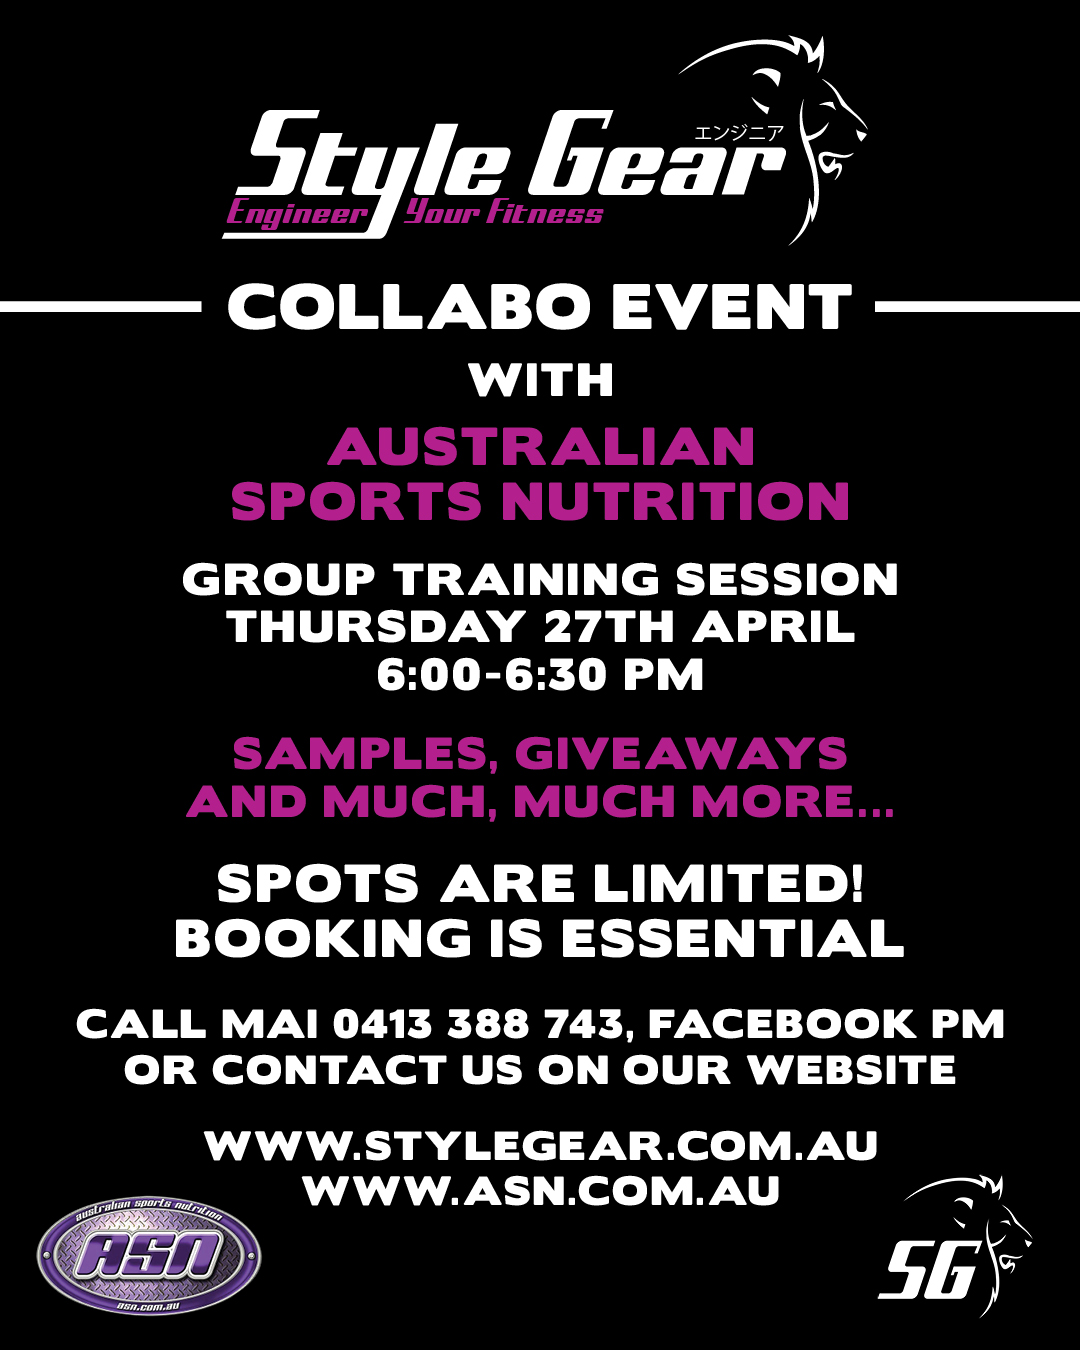 Collabo Event with ASN - Style Gear was super excited to host Australian Sports Nutrition (ASN) on 27th April. We had an amazing group training session with some great samples and giveaways. A big thank you to ASN, plus everyone who came along and made this night so awesome!